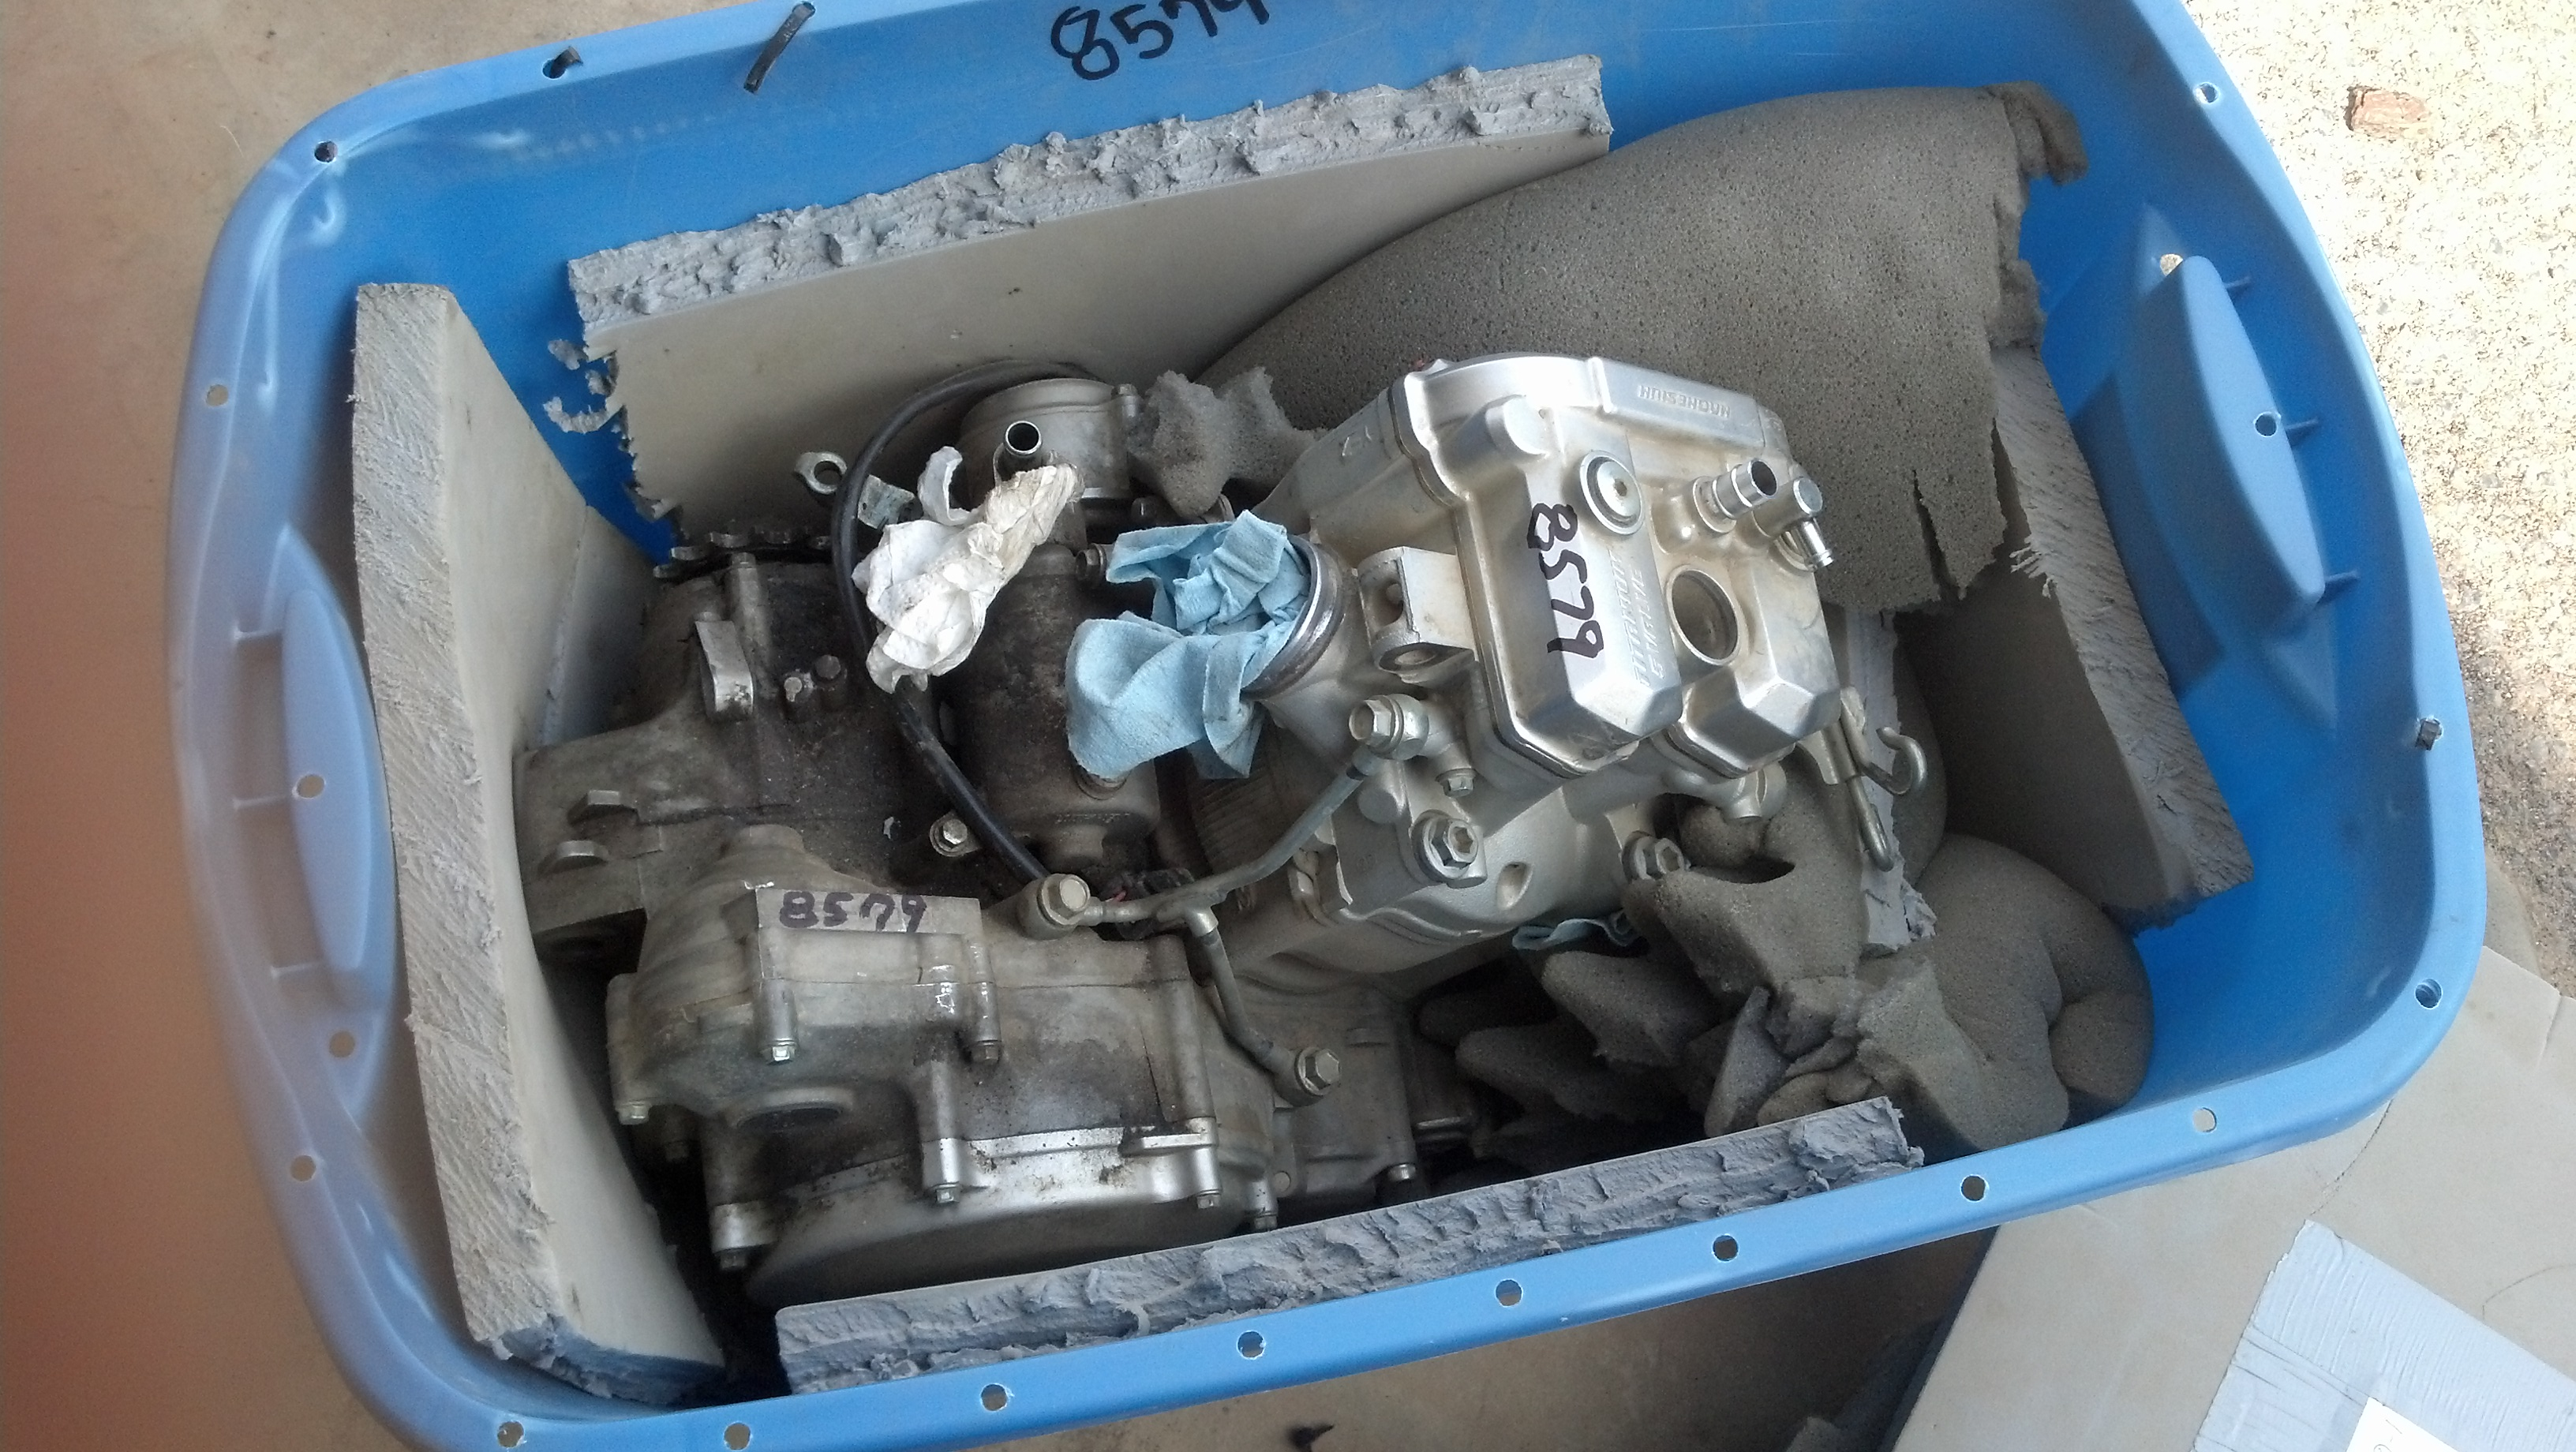 Details about Yamaha YFZ450R YFZ450X TOTAL Engine Motor Rebuild YFZ450  Specialist -Parts&Labor